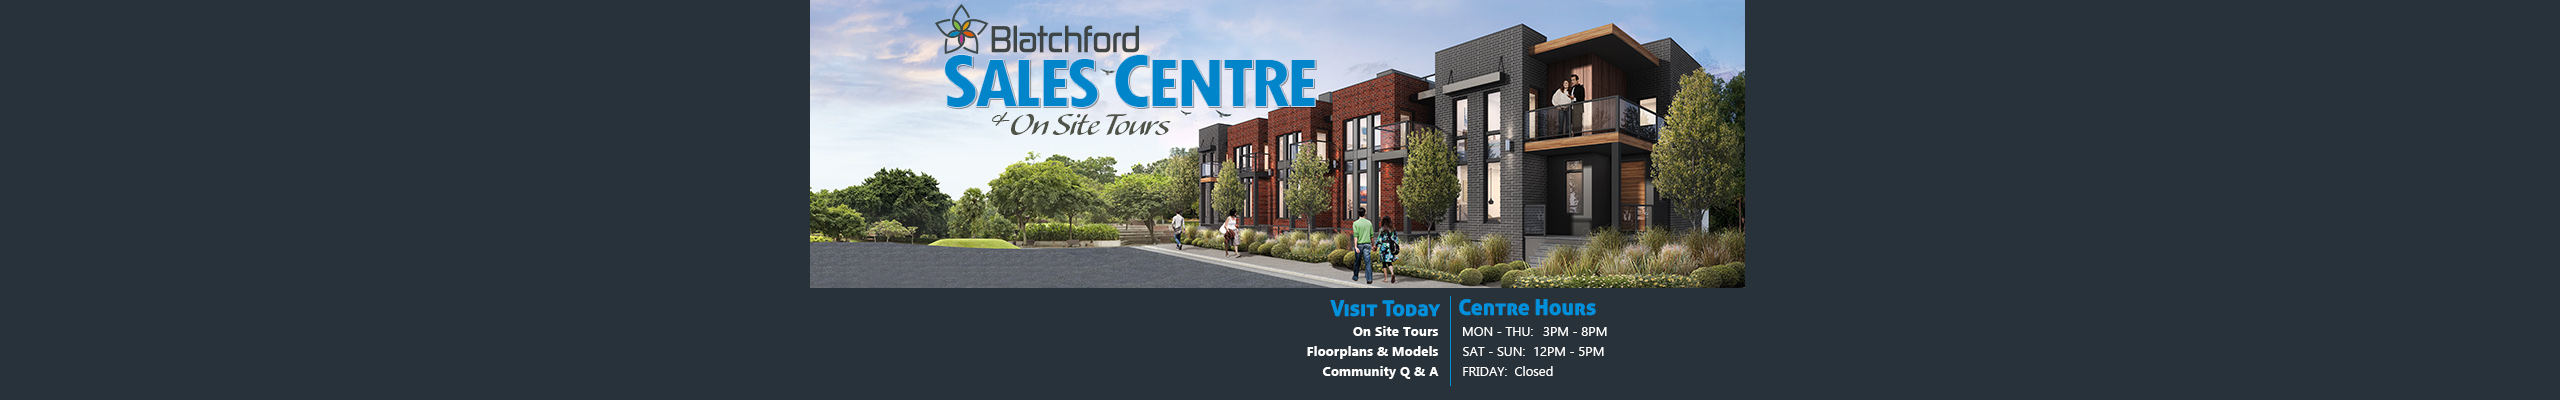 Blatchford - Sales Centre Now Open